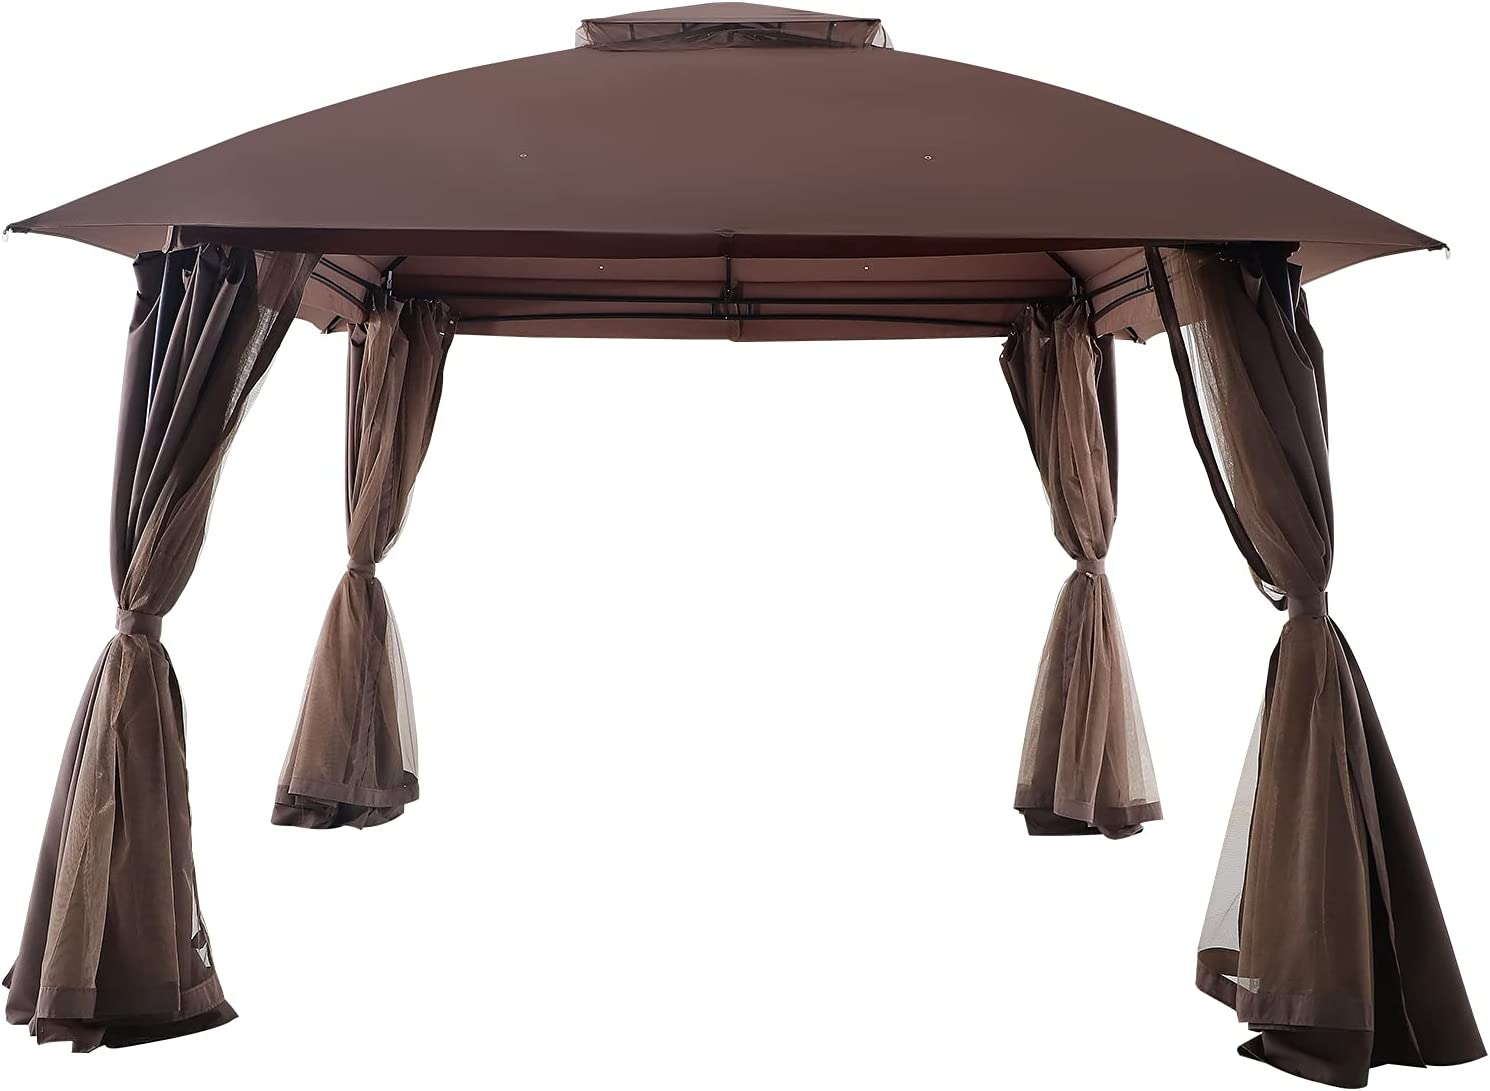 SUNSPEAR Gazebos Ultra-Cheap Deals for Patios 11' x M Gazebo Roof with Double OFFicial